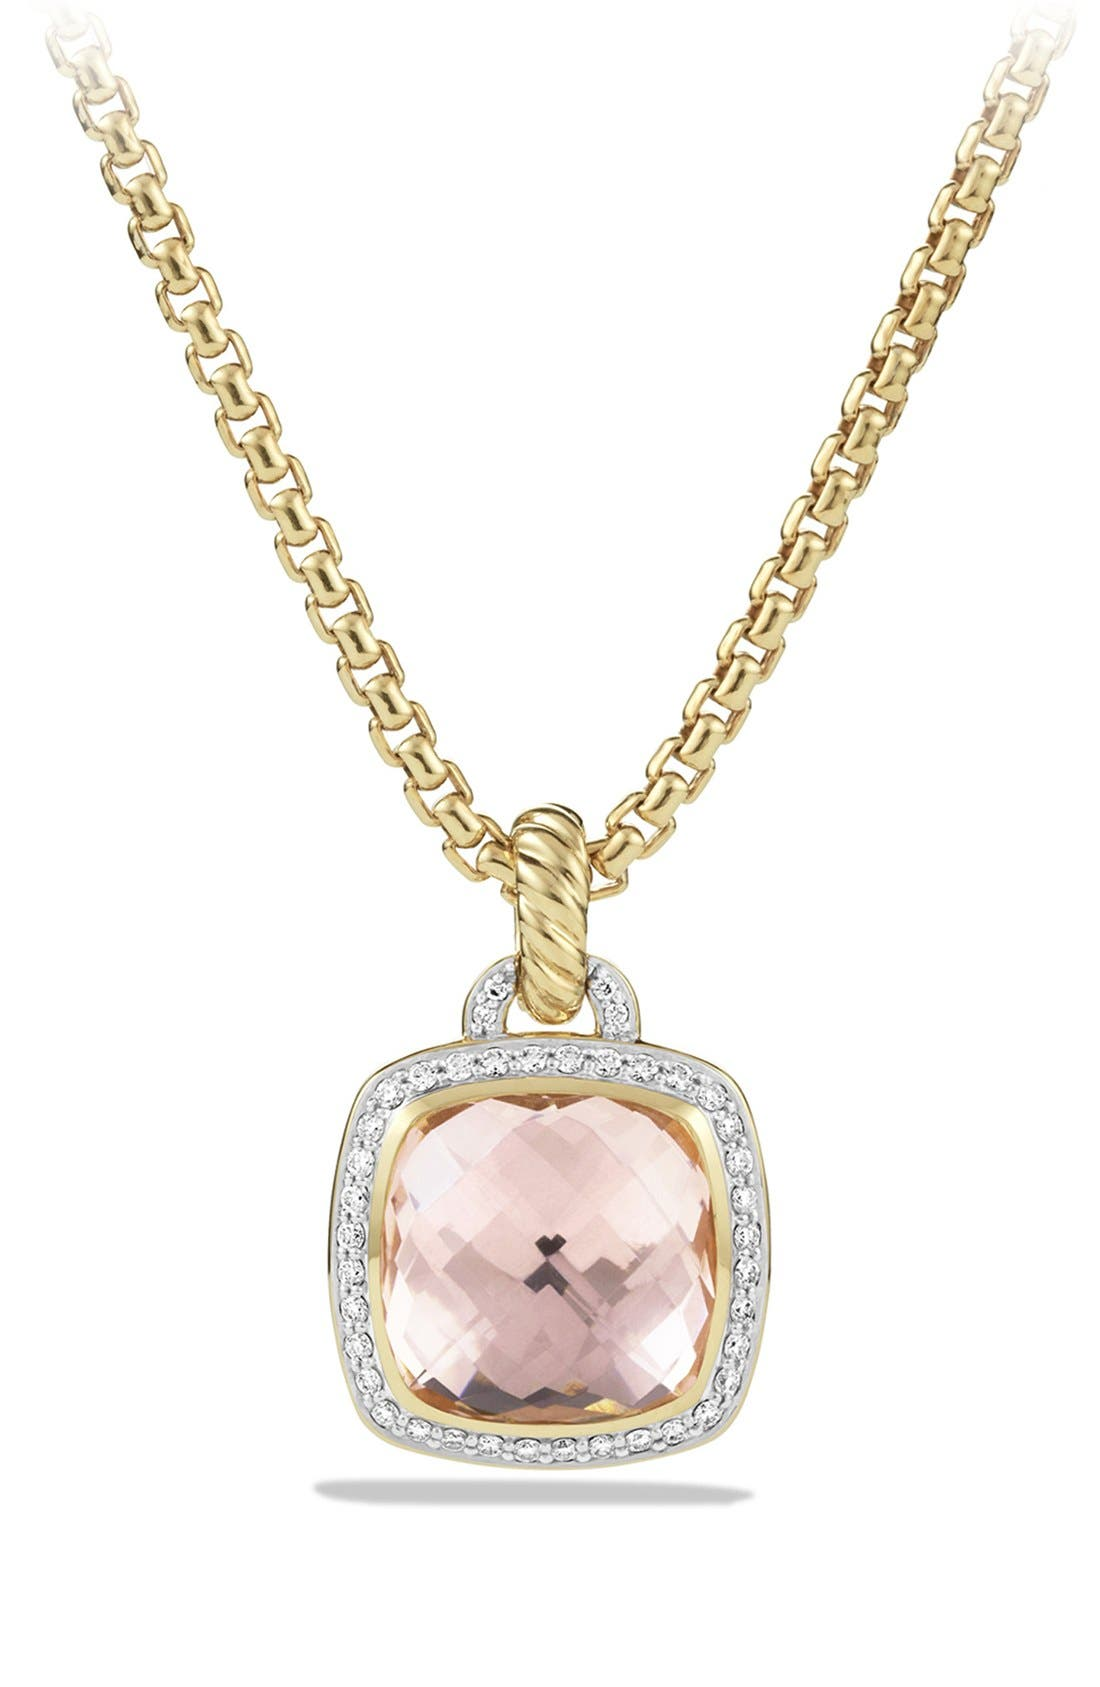 David Yurman 'Albion' Pendant with Lemon Citrine and Diamonds in 18k Gold